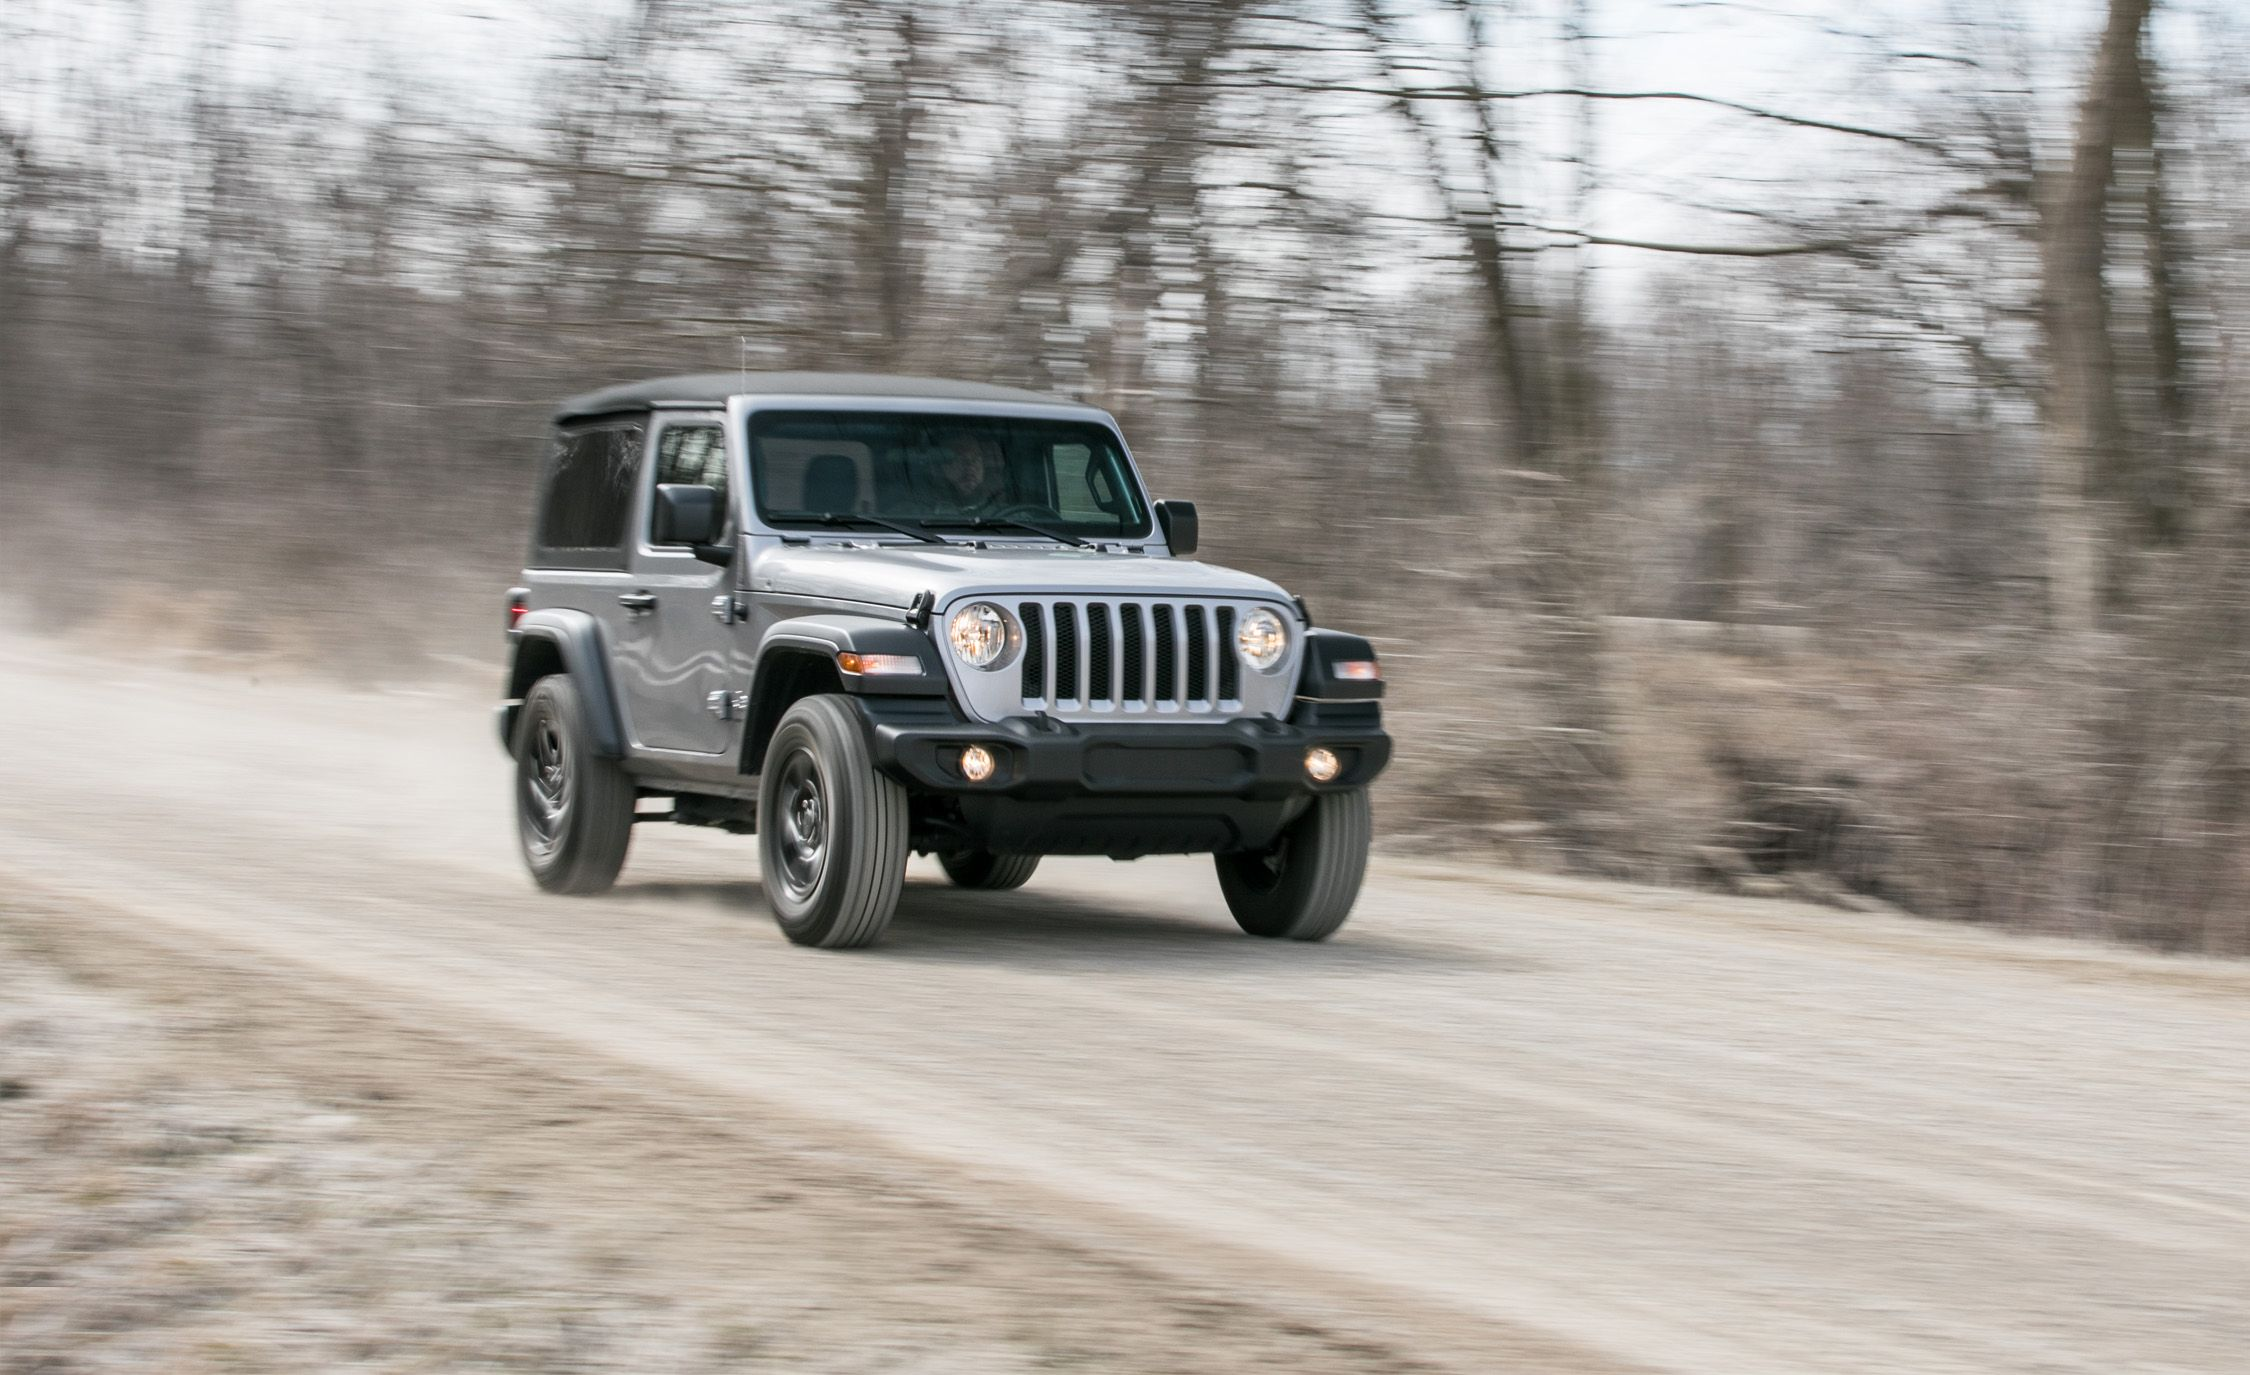 The 2018 Jeep Wrangler Jl Two Door Sticks To Its Core Values Review Car And Driver